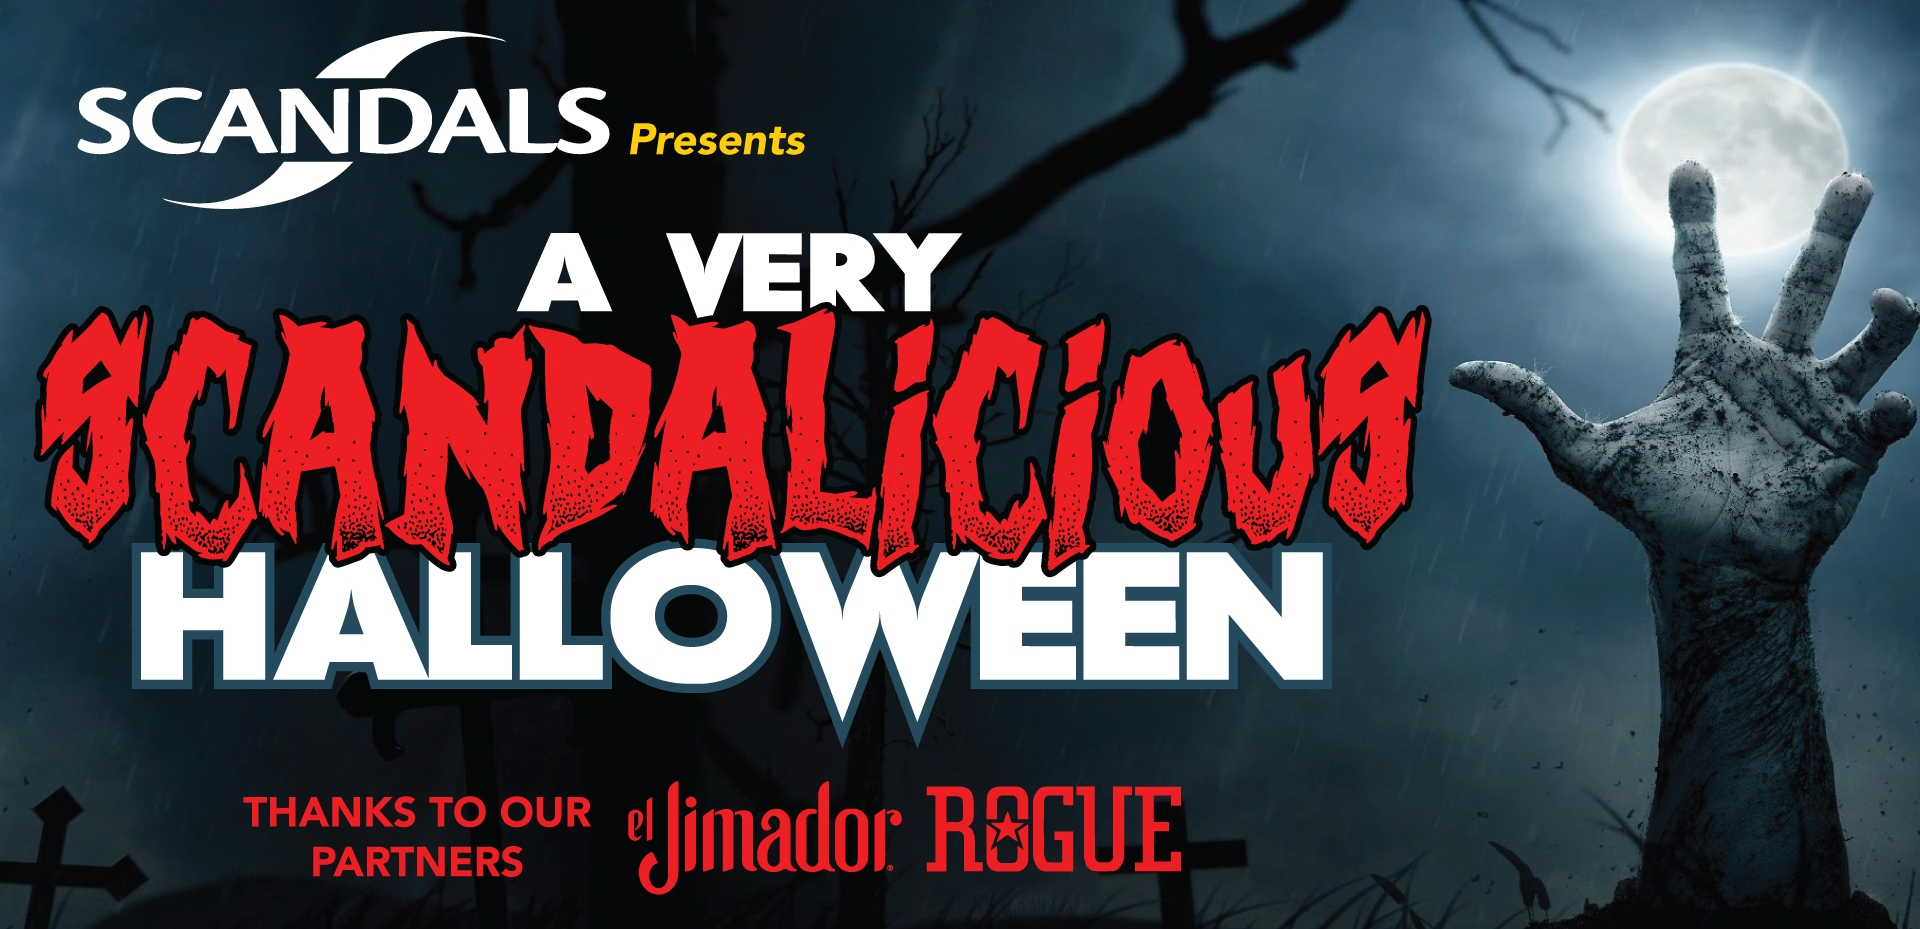 Halloween is one of our favorite holidays and this year we have some new treats to share with all of you! Stop in from 4pm - 8pm for Happy Hour and get El Jimador tequila for only $3 ($5 regular well price) and Dead Guy Ale from Rouge for only $3 a 12oz. can!  We will have a costume contest at 9pm and from 9pm - 1am DJ ROBB will be spinning hits along with their music videos! Come in early and stay all night! Hope to see you there!   Make sure to join the event on our facebook page here!